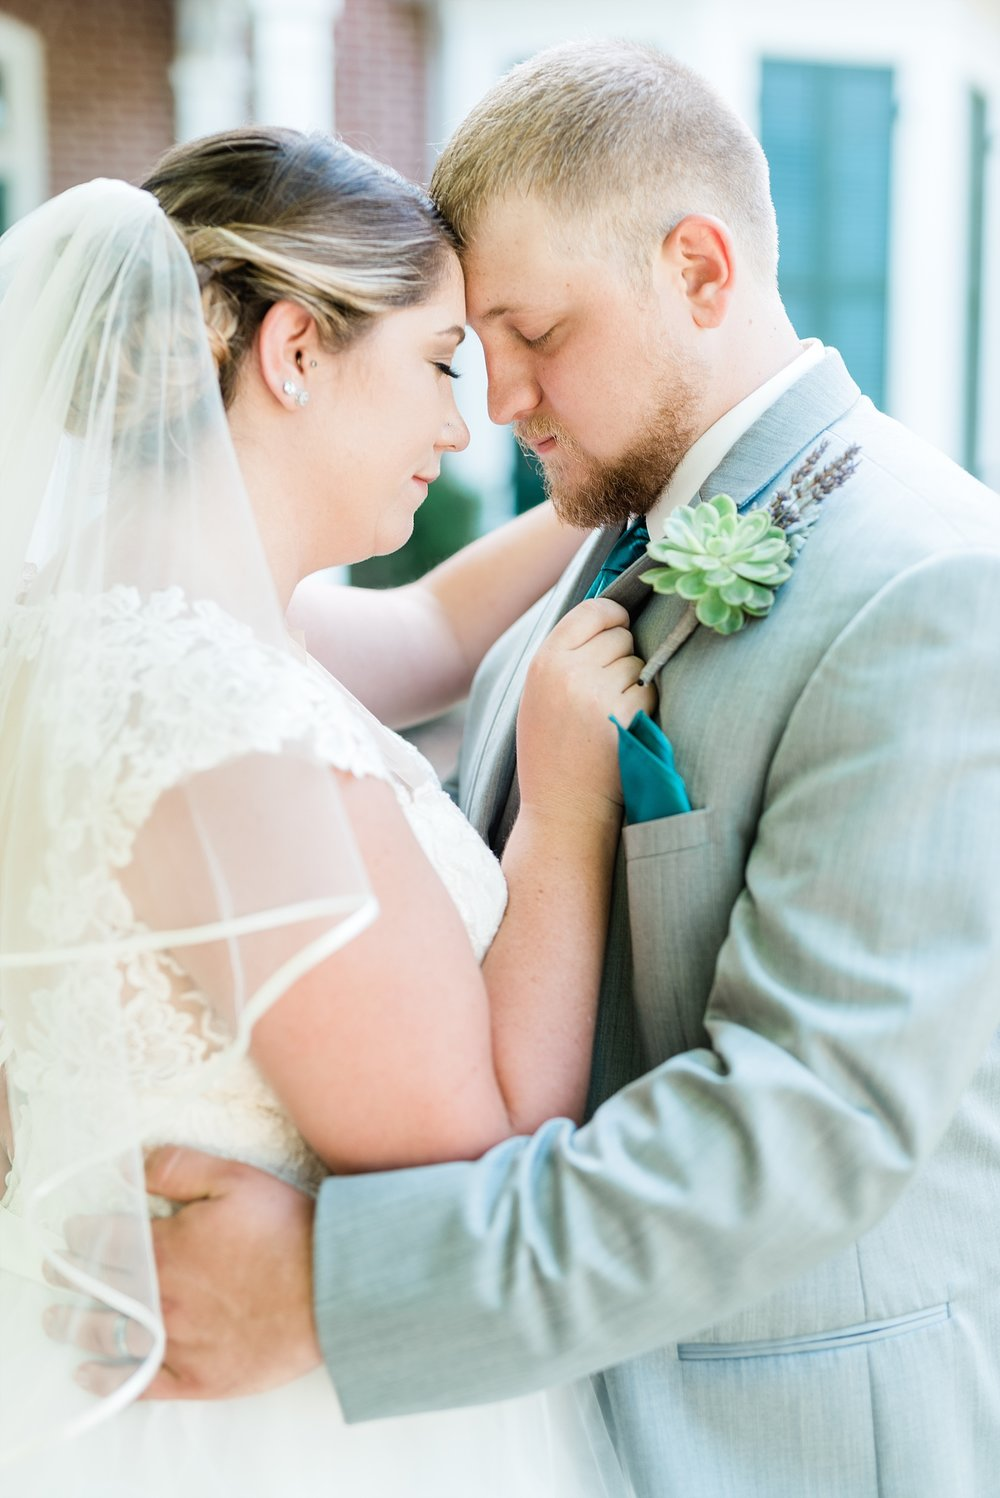 Baurichter Wedding at Stoney Creek Inn Columbia Missouri by Kelsi Kliethermes Photography_0023.jpg